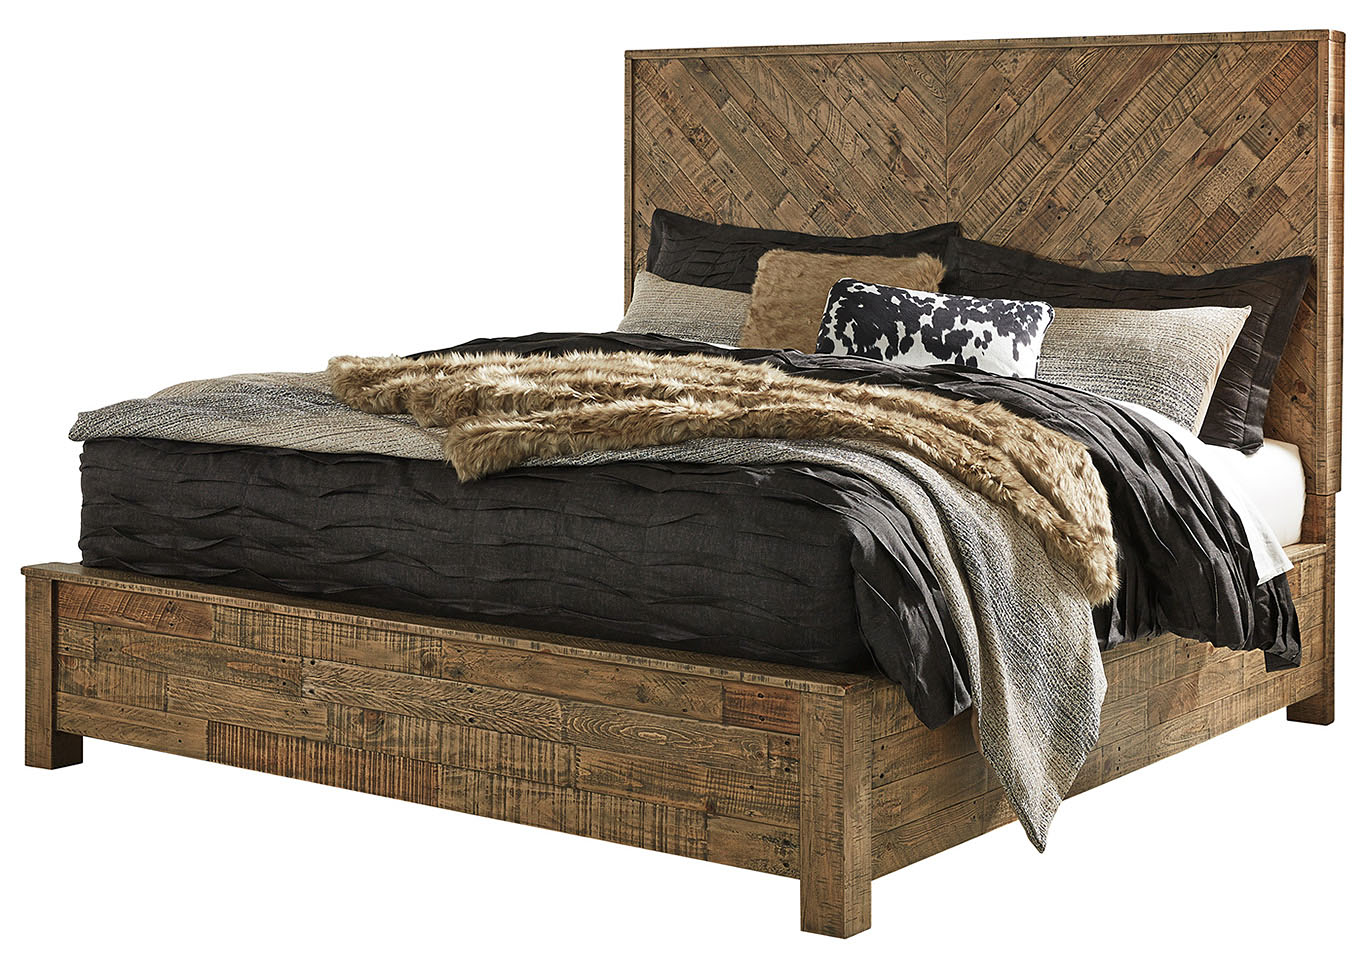 Grindleburg Light Brown King Platform Bed,Signature Design By Ashley